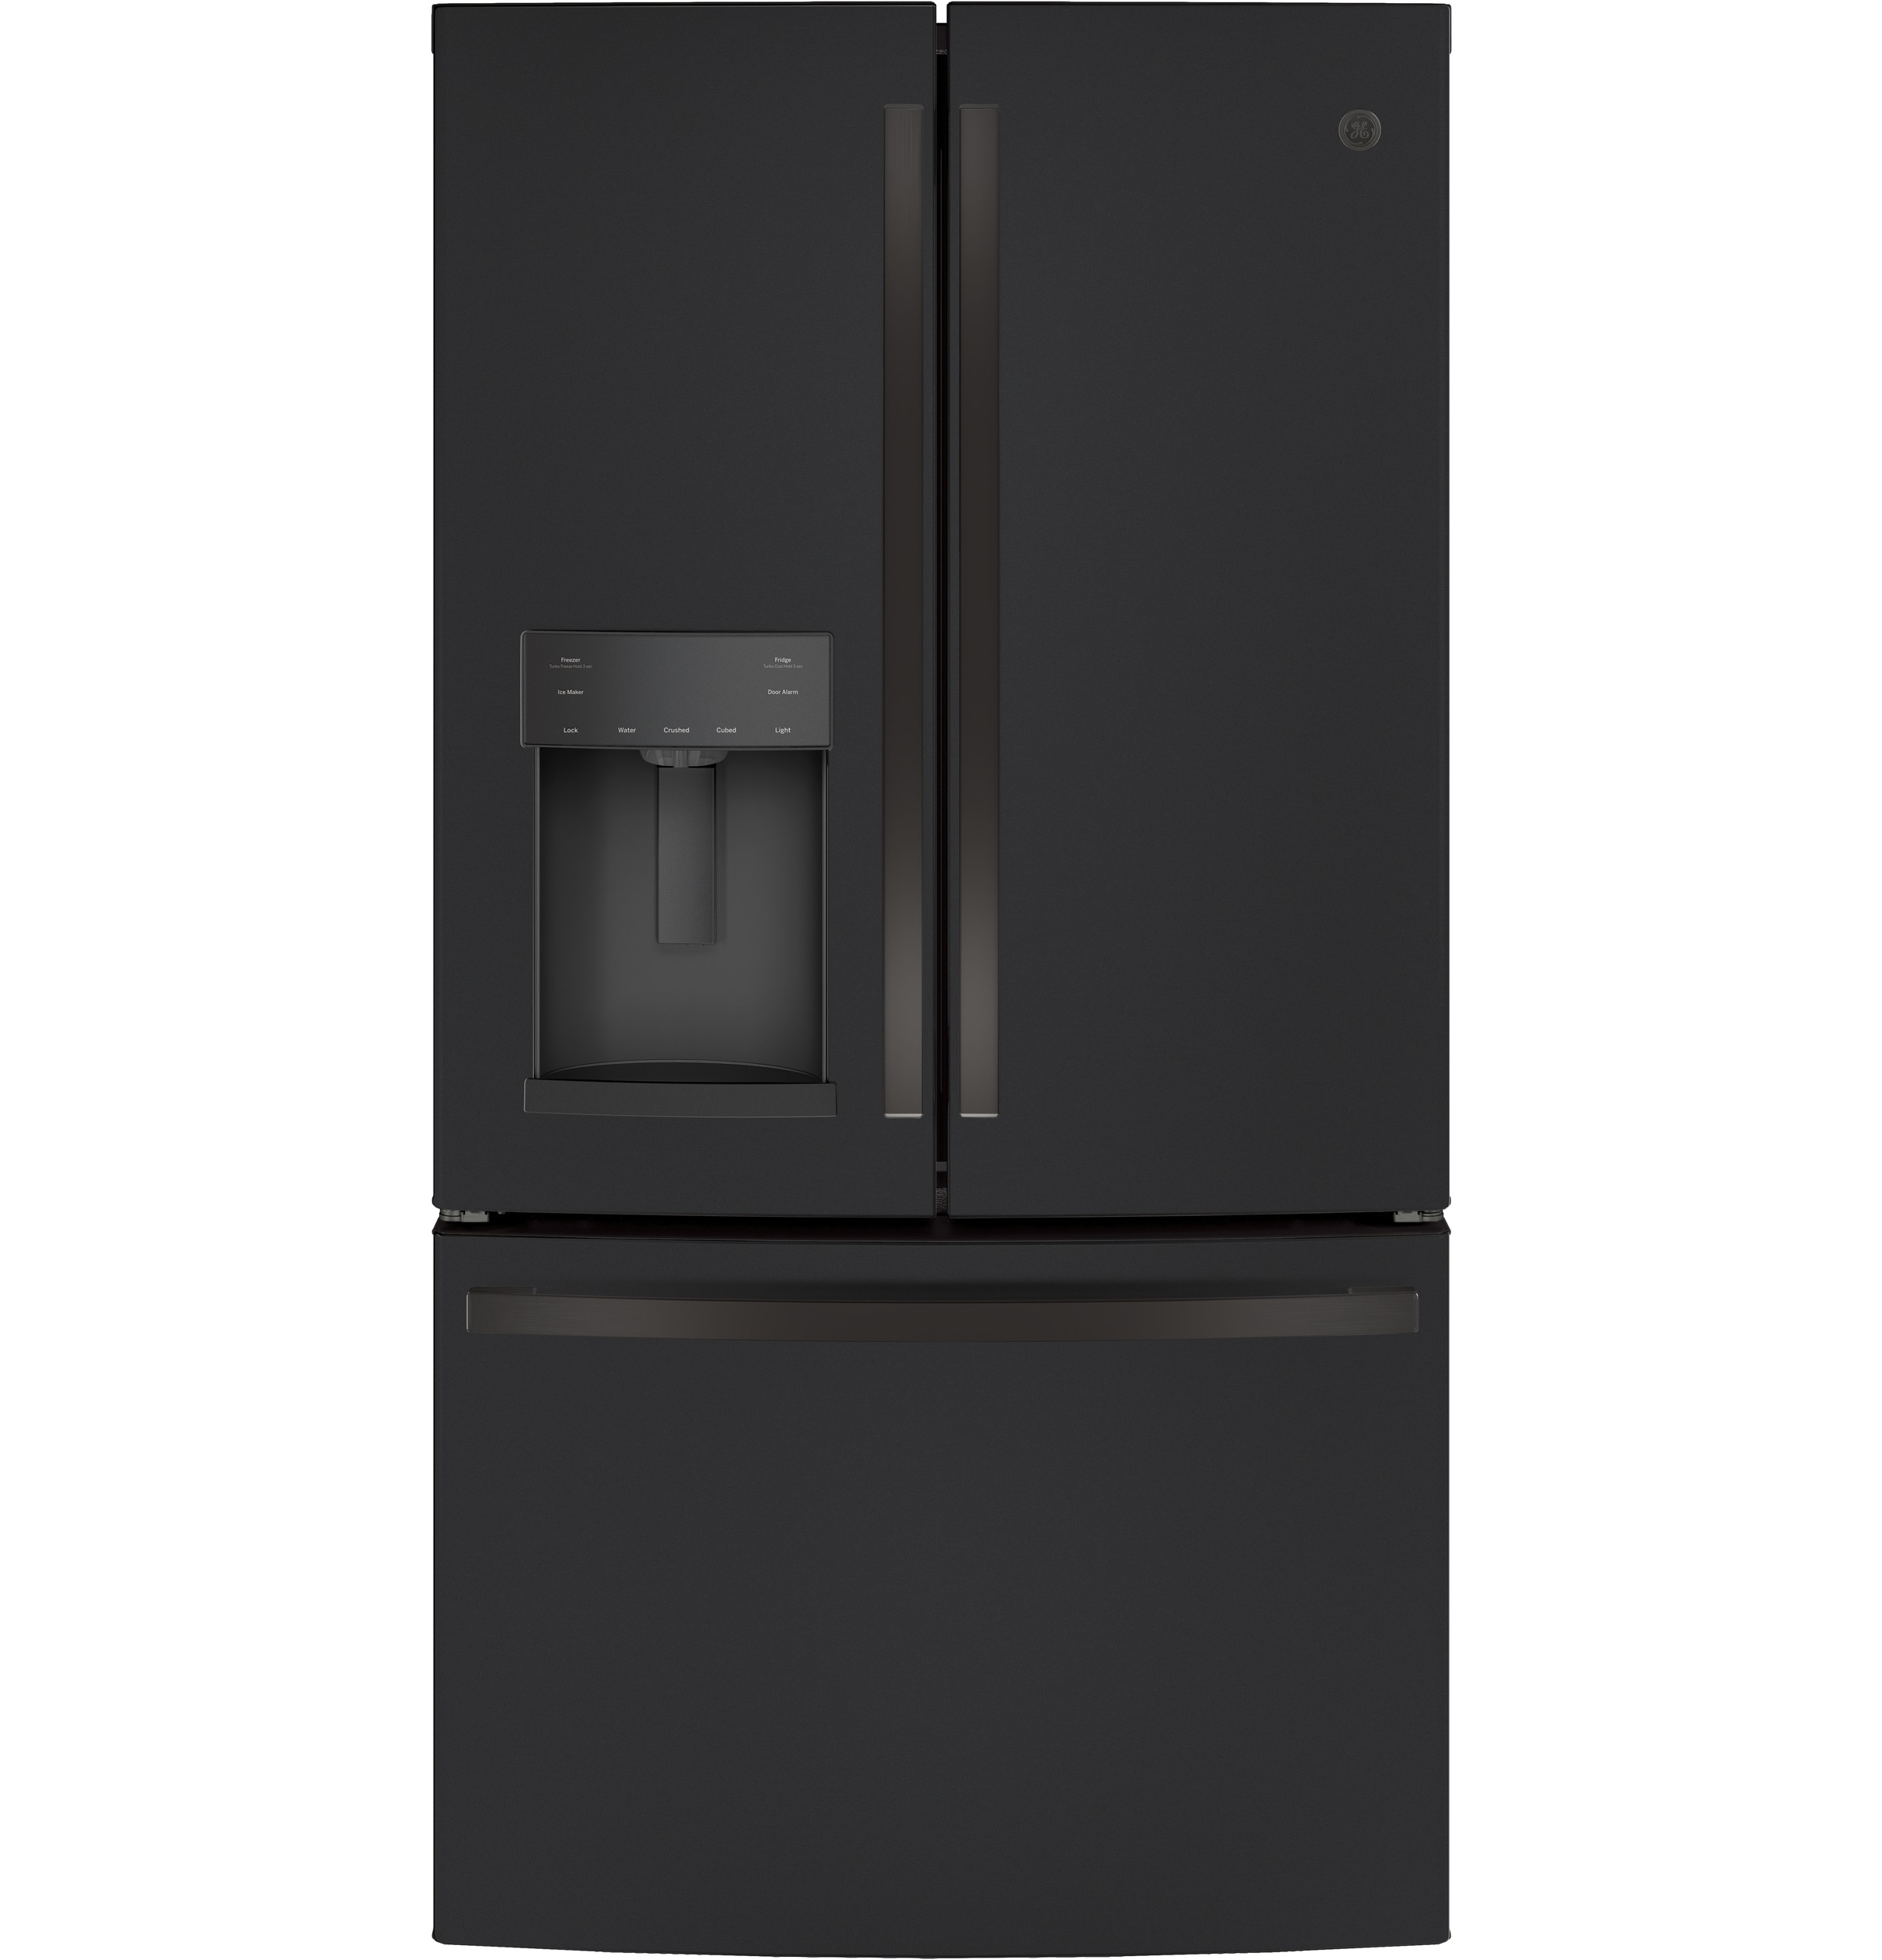 Model: GFE28GELDS | GE GE® ENERGY STAR® 27.7 Cu. Ft. French-Door Refrigerator